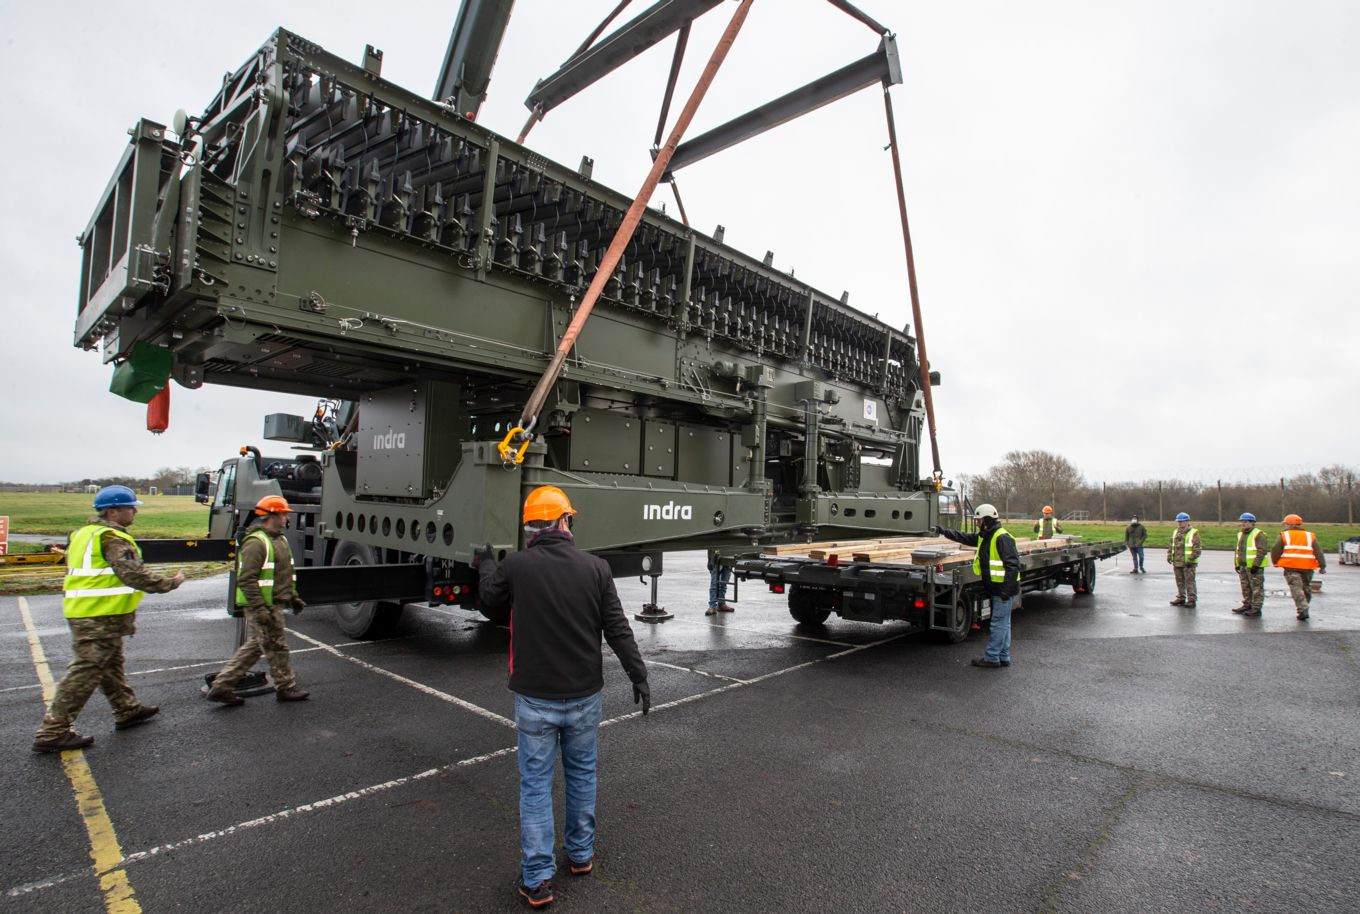 deployable radar being moved by RAF personnel